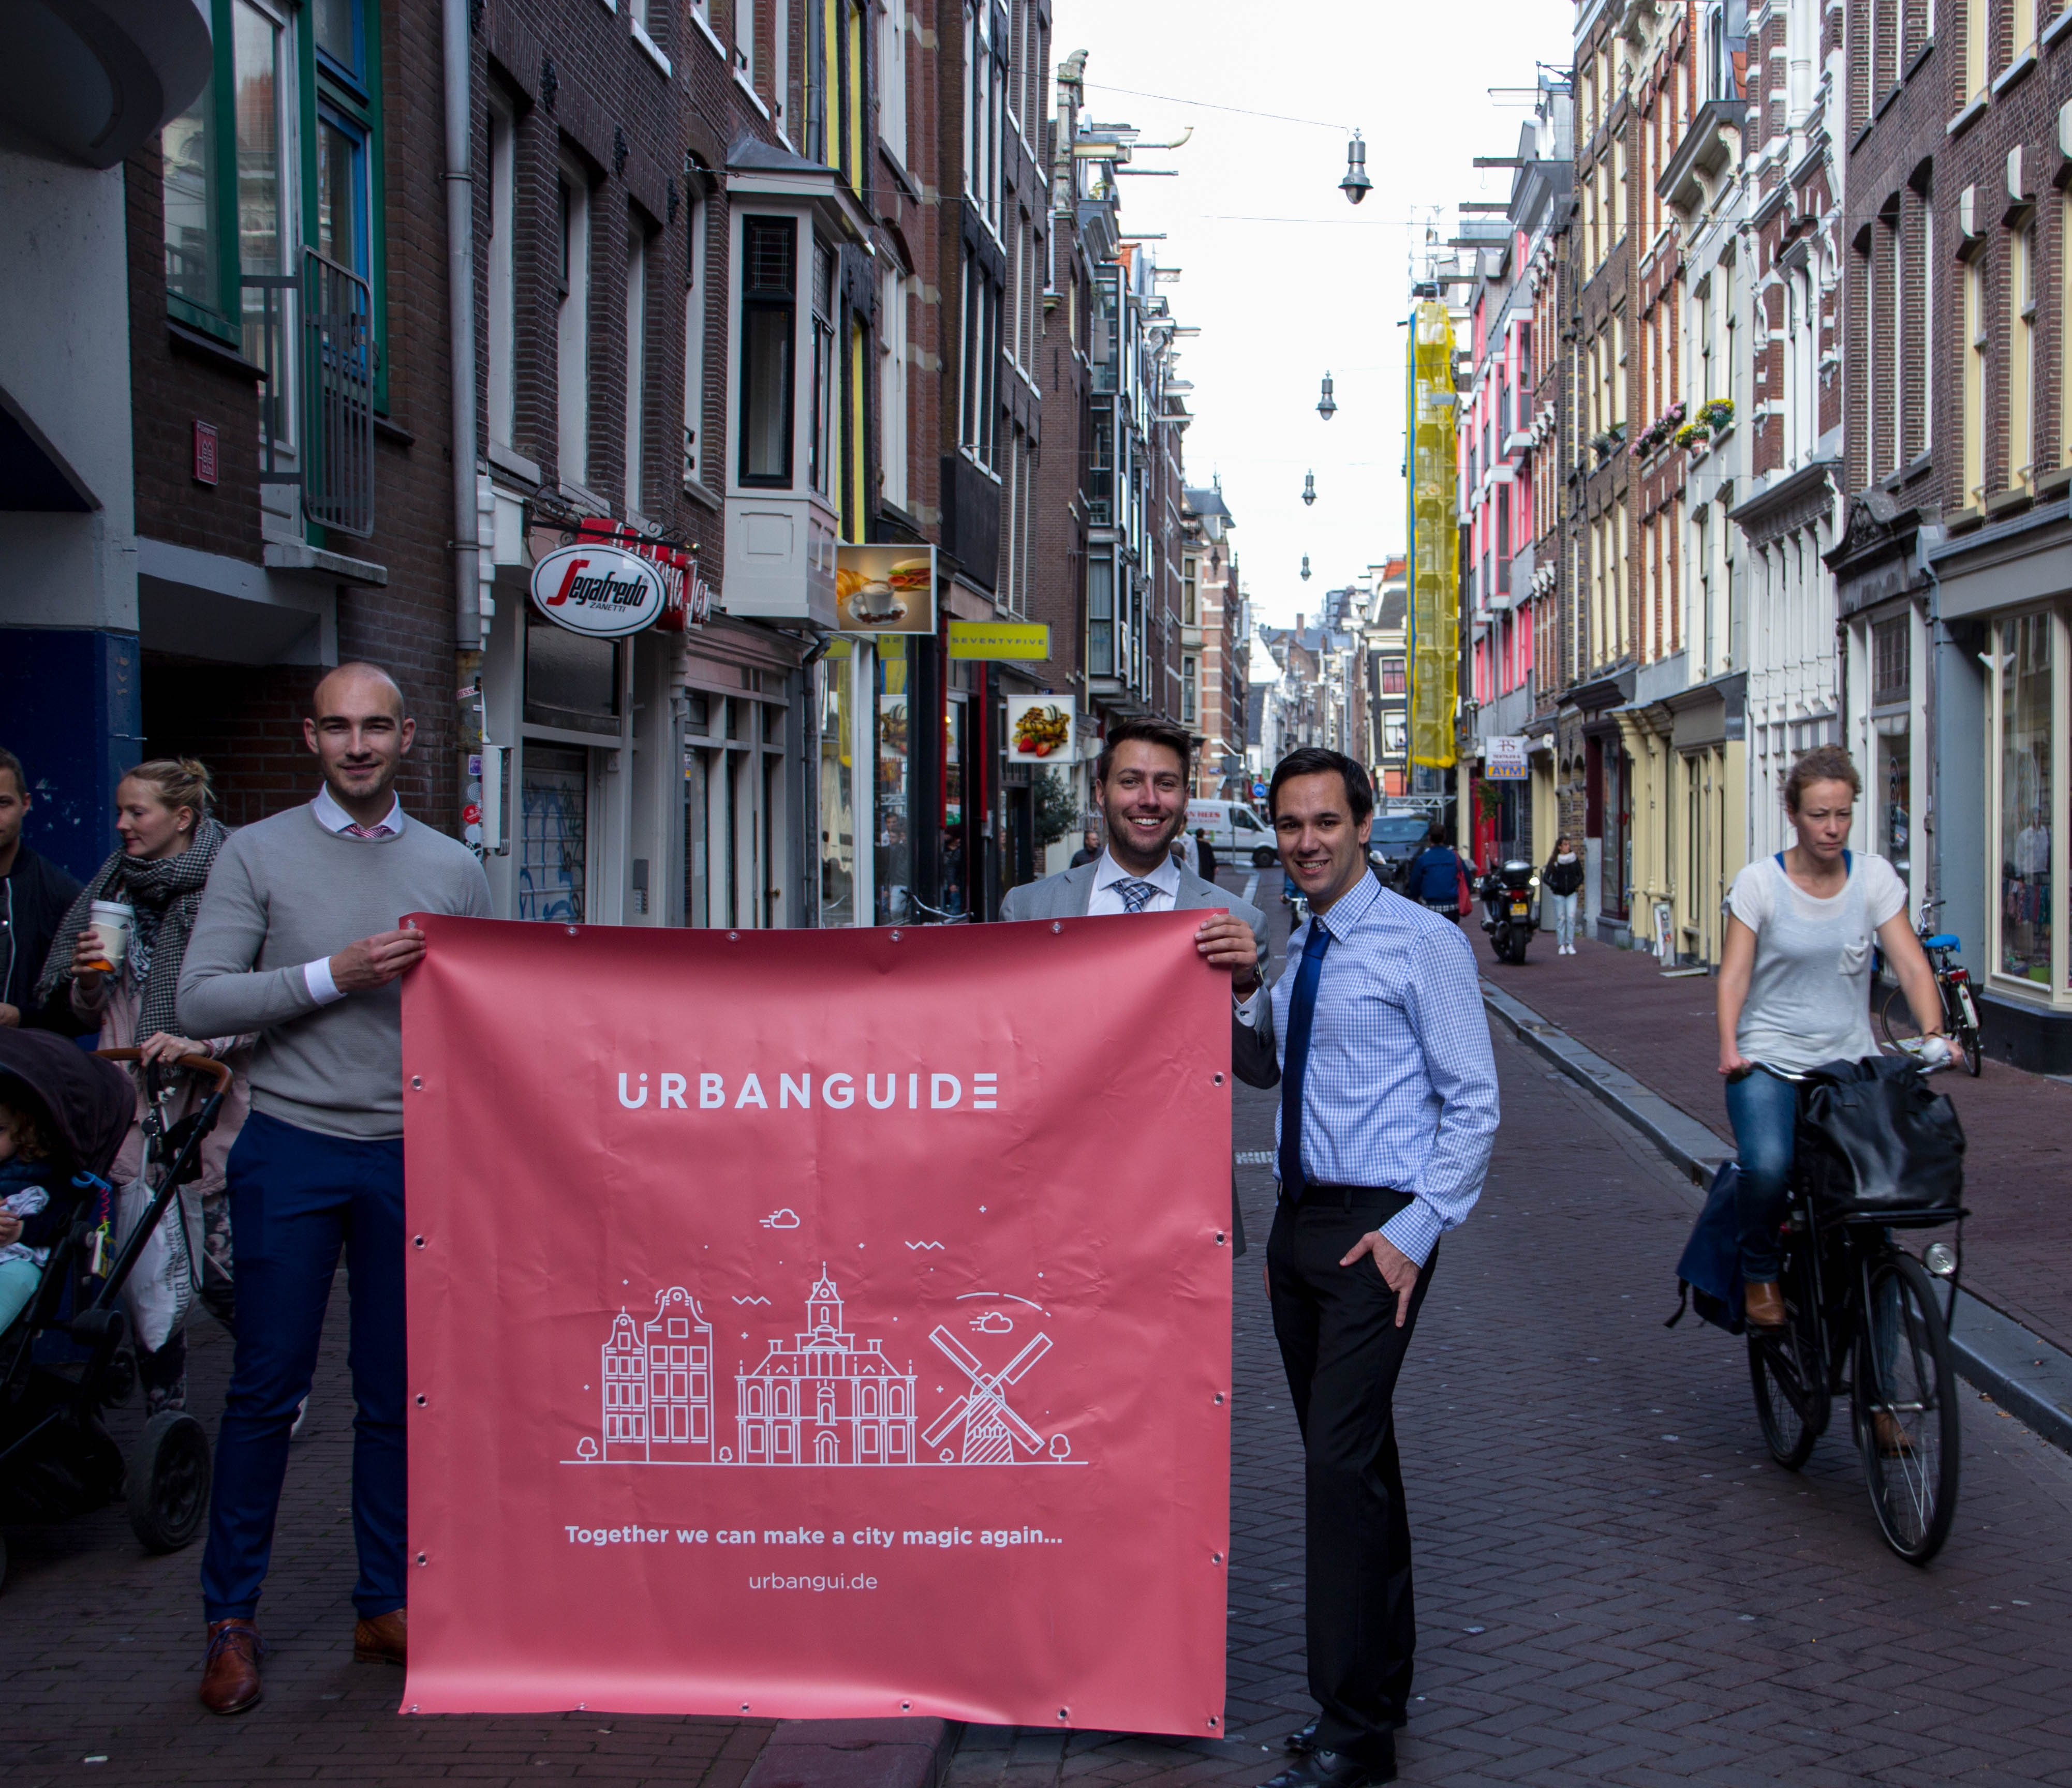 Dutch startup UrbanGuide could solve Amsterdam's mass tourism